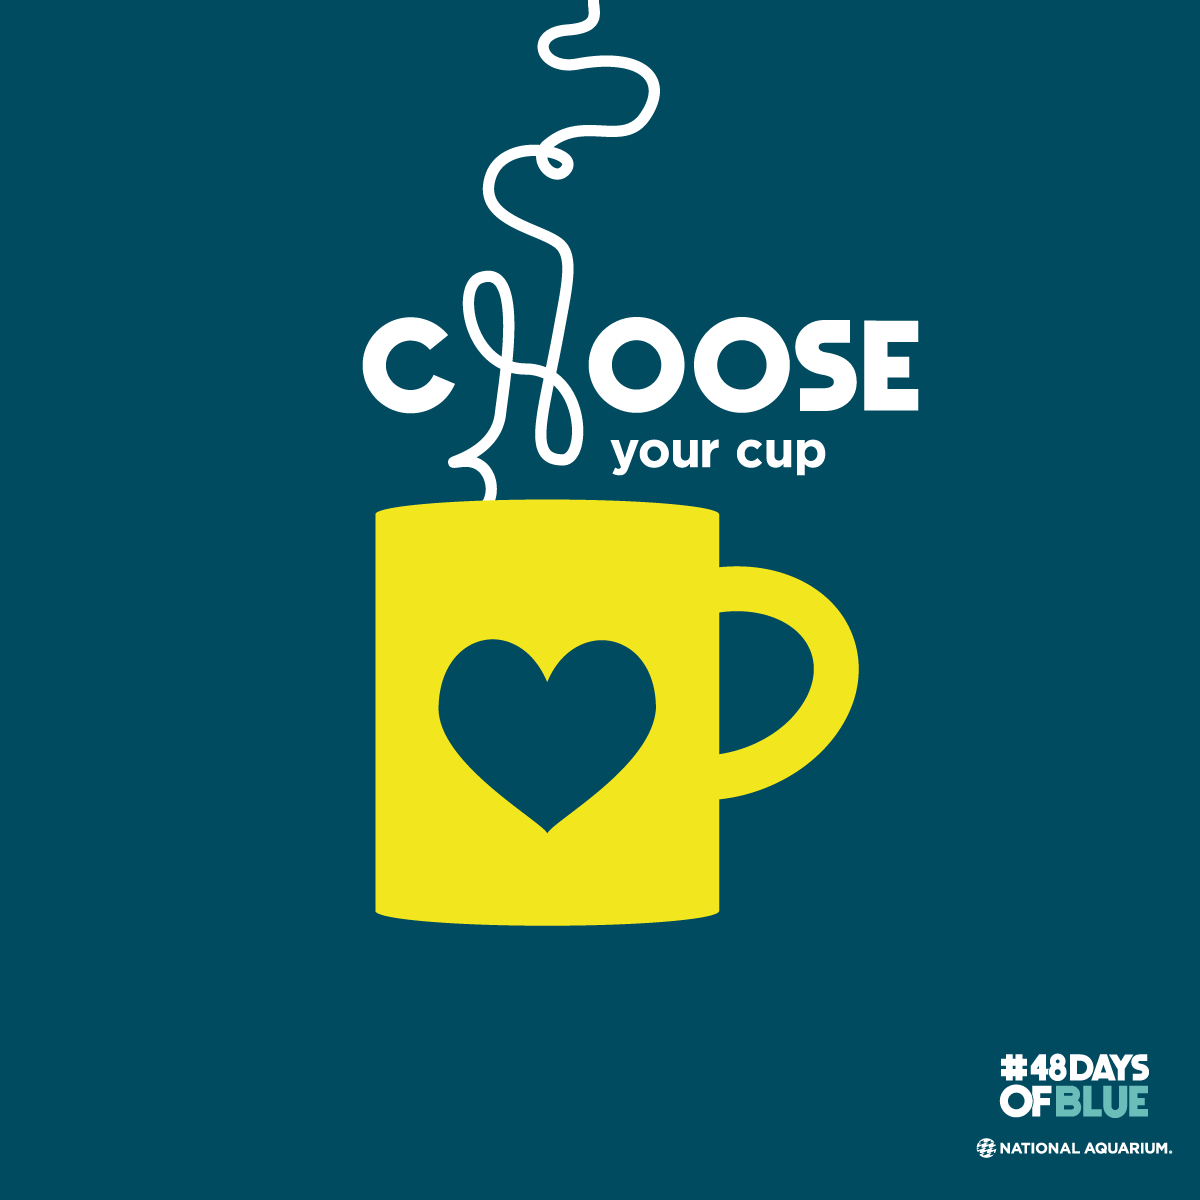 Choose-Your-Cup - #48DaysofBlue